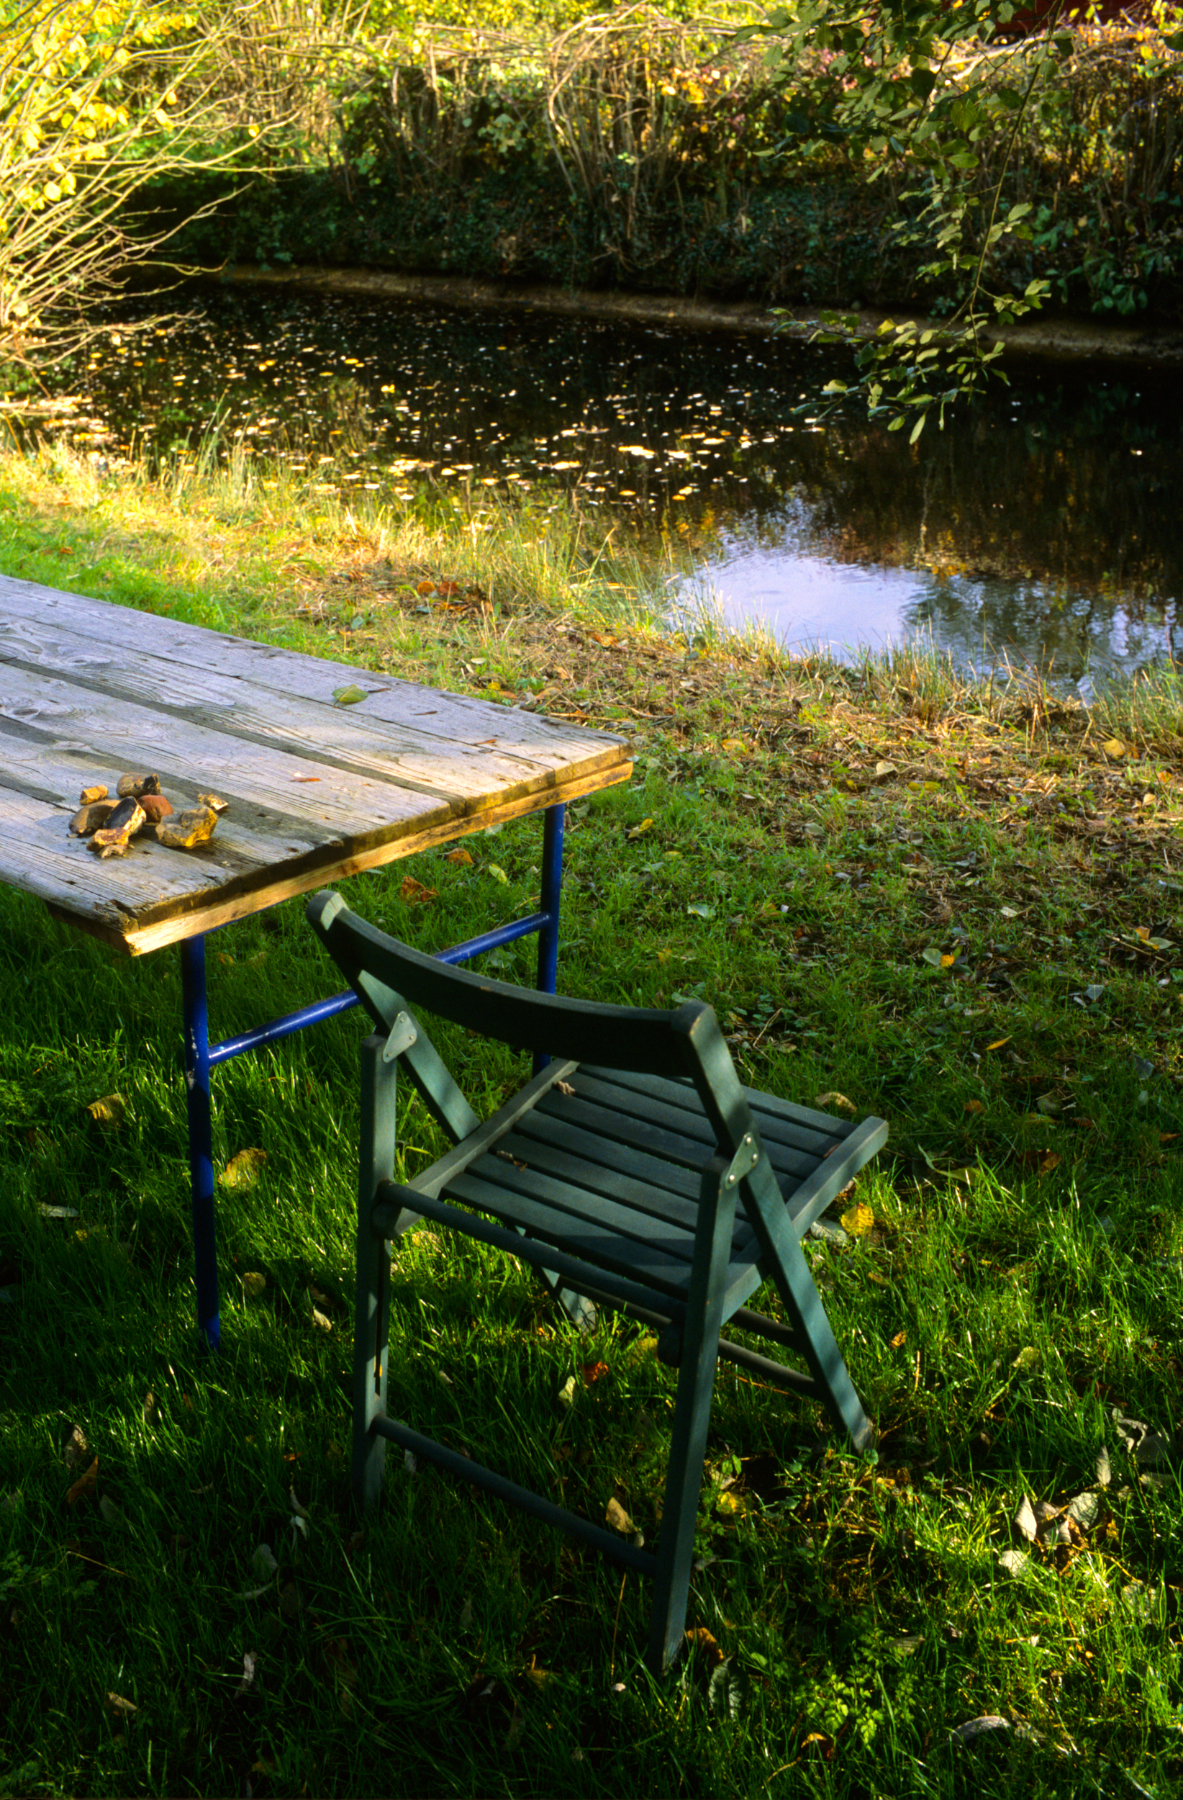 Table and Chair,Walnut Tree Farm, Suffolk, 2006; 32 x 22 inches, edition of 5